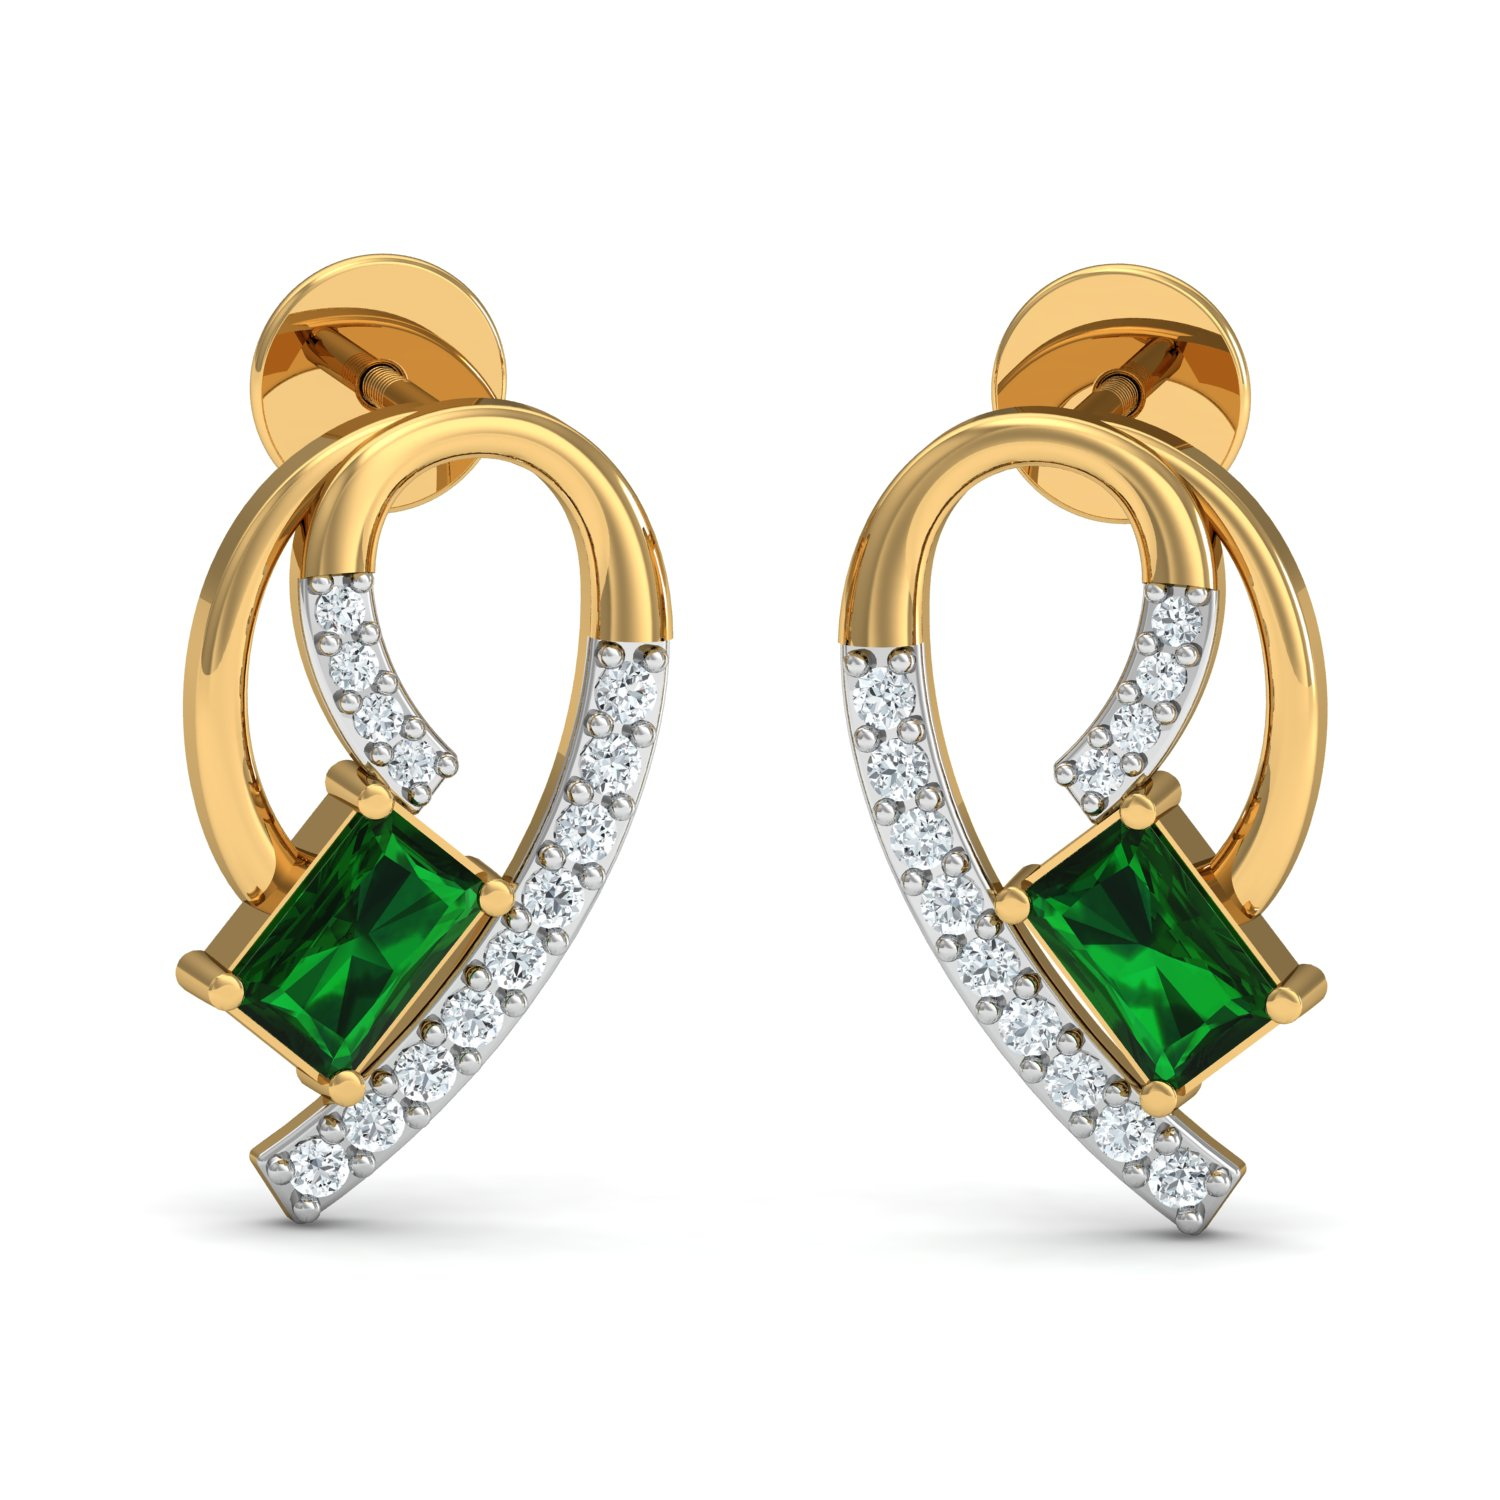 diamond earring colombian envy earrings it natural carat em emerald studs